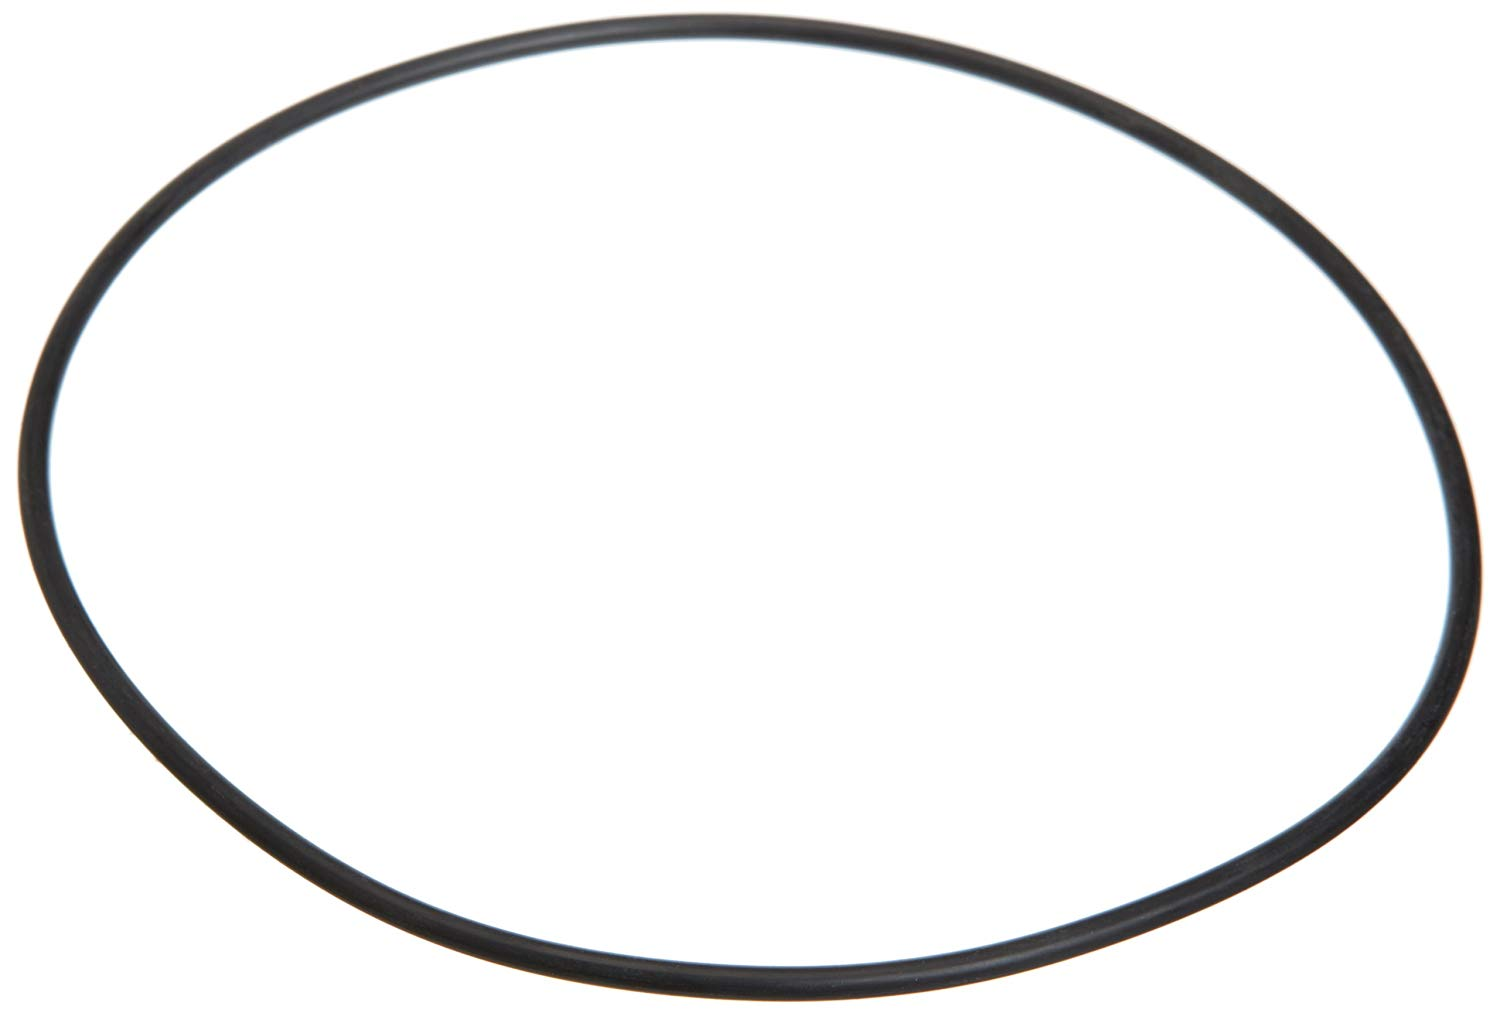 Pentair 35505-1275 O-Ring Cover Replacement for Sta-Rite 1-1/2-Inch Multiport Pool and Spa Valves